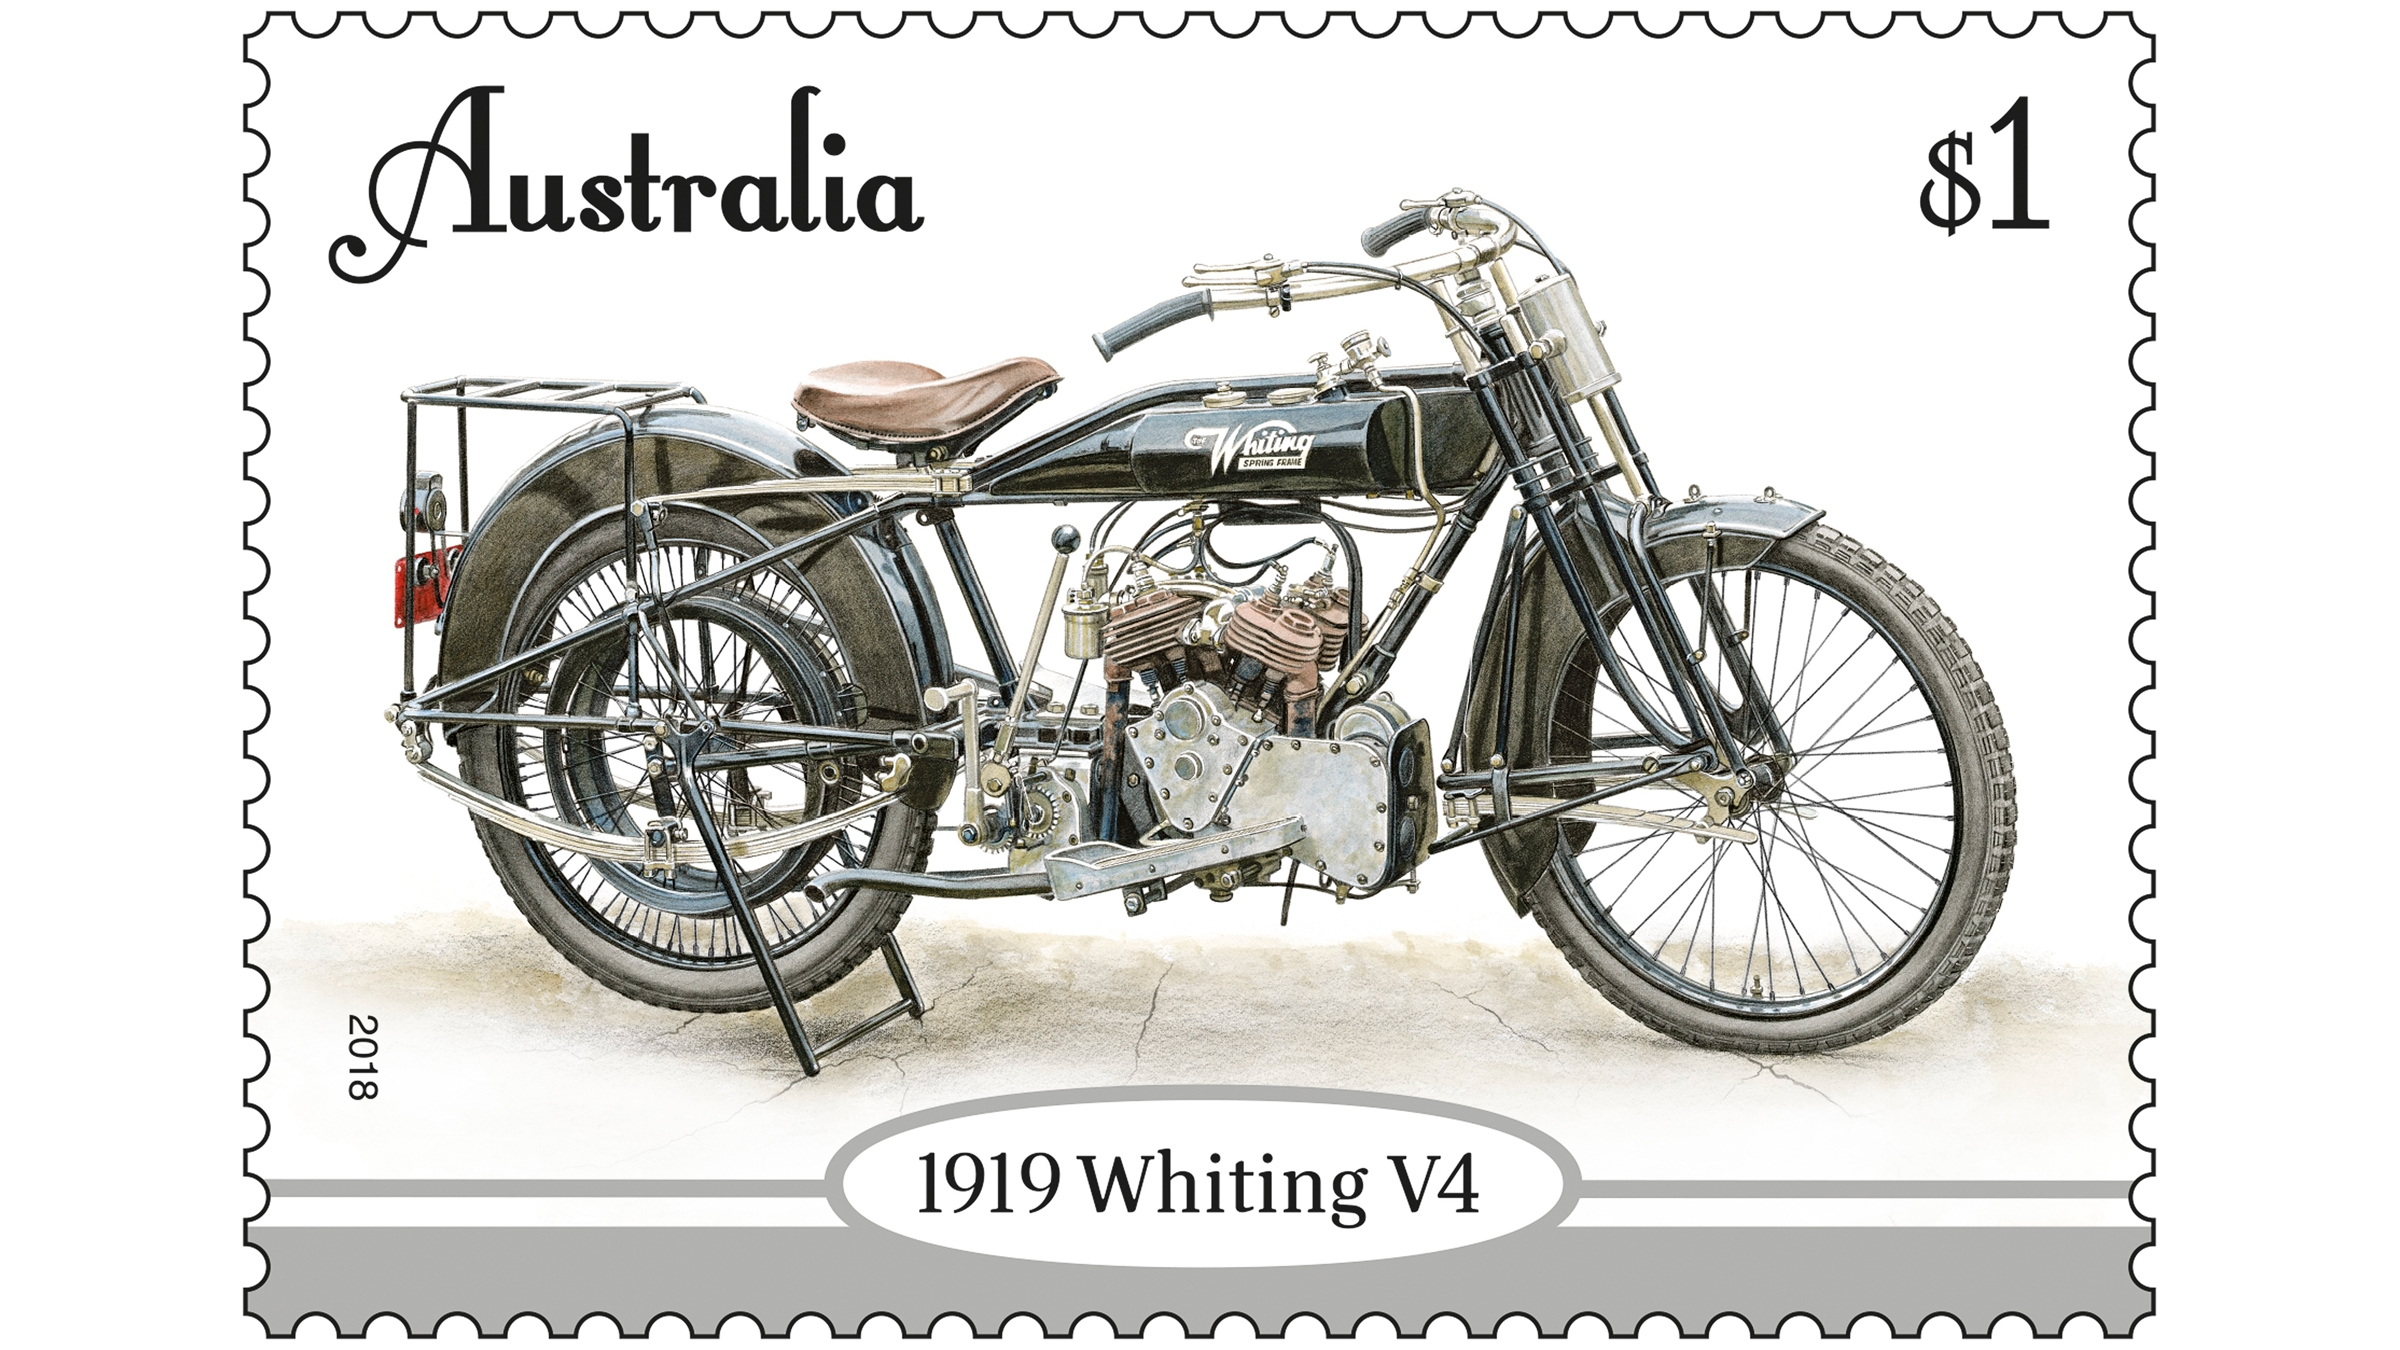 An Australia Post commemorative stamp showing the 1919 Whiting 685cc V4 motorcycle